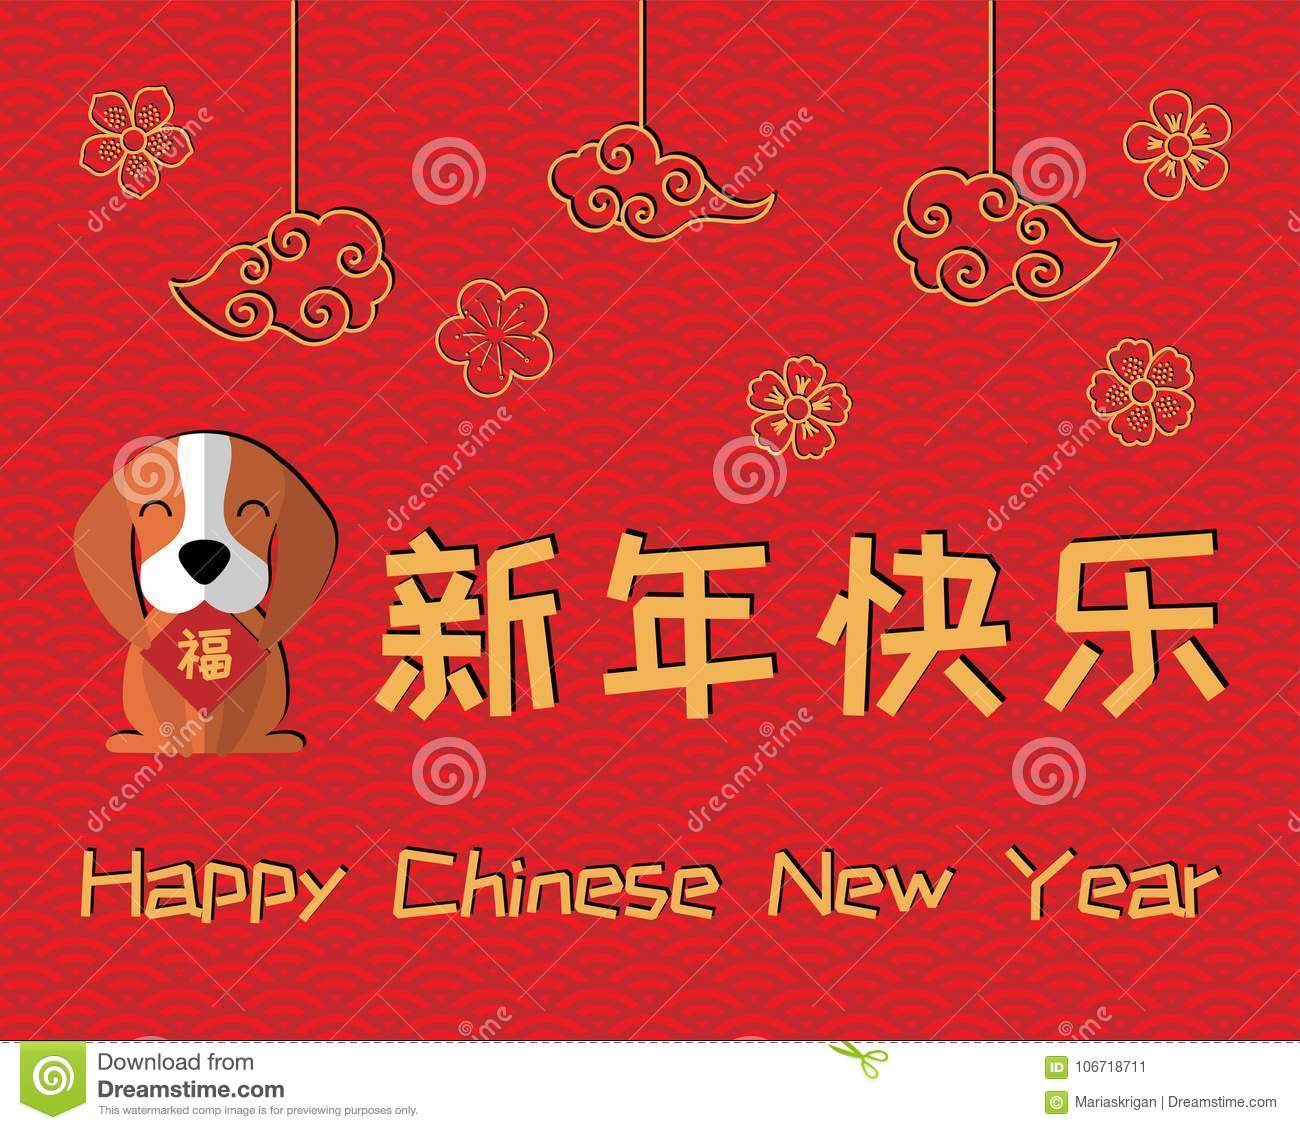 download 2018 chinese new year greeting card stock vector illustration of cloud background